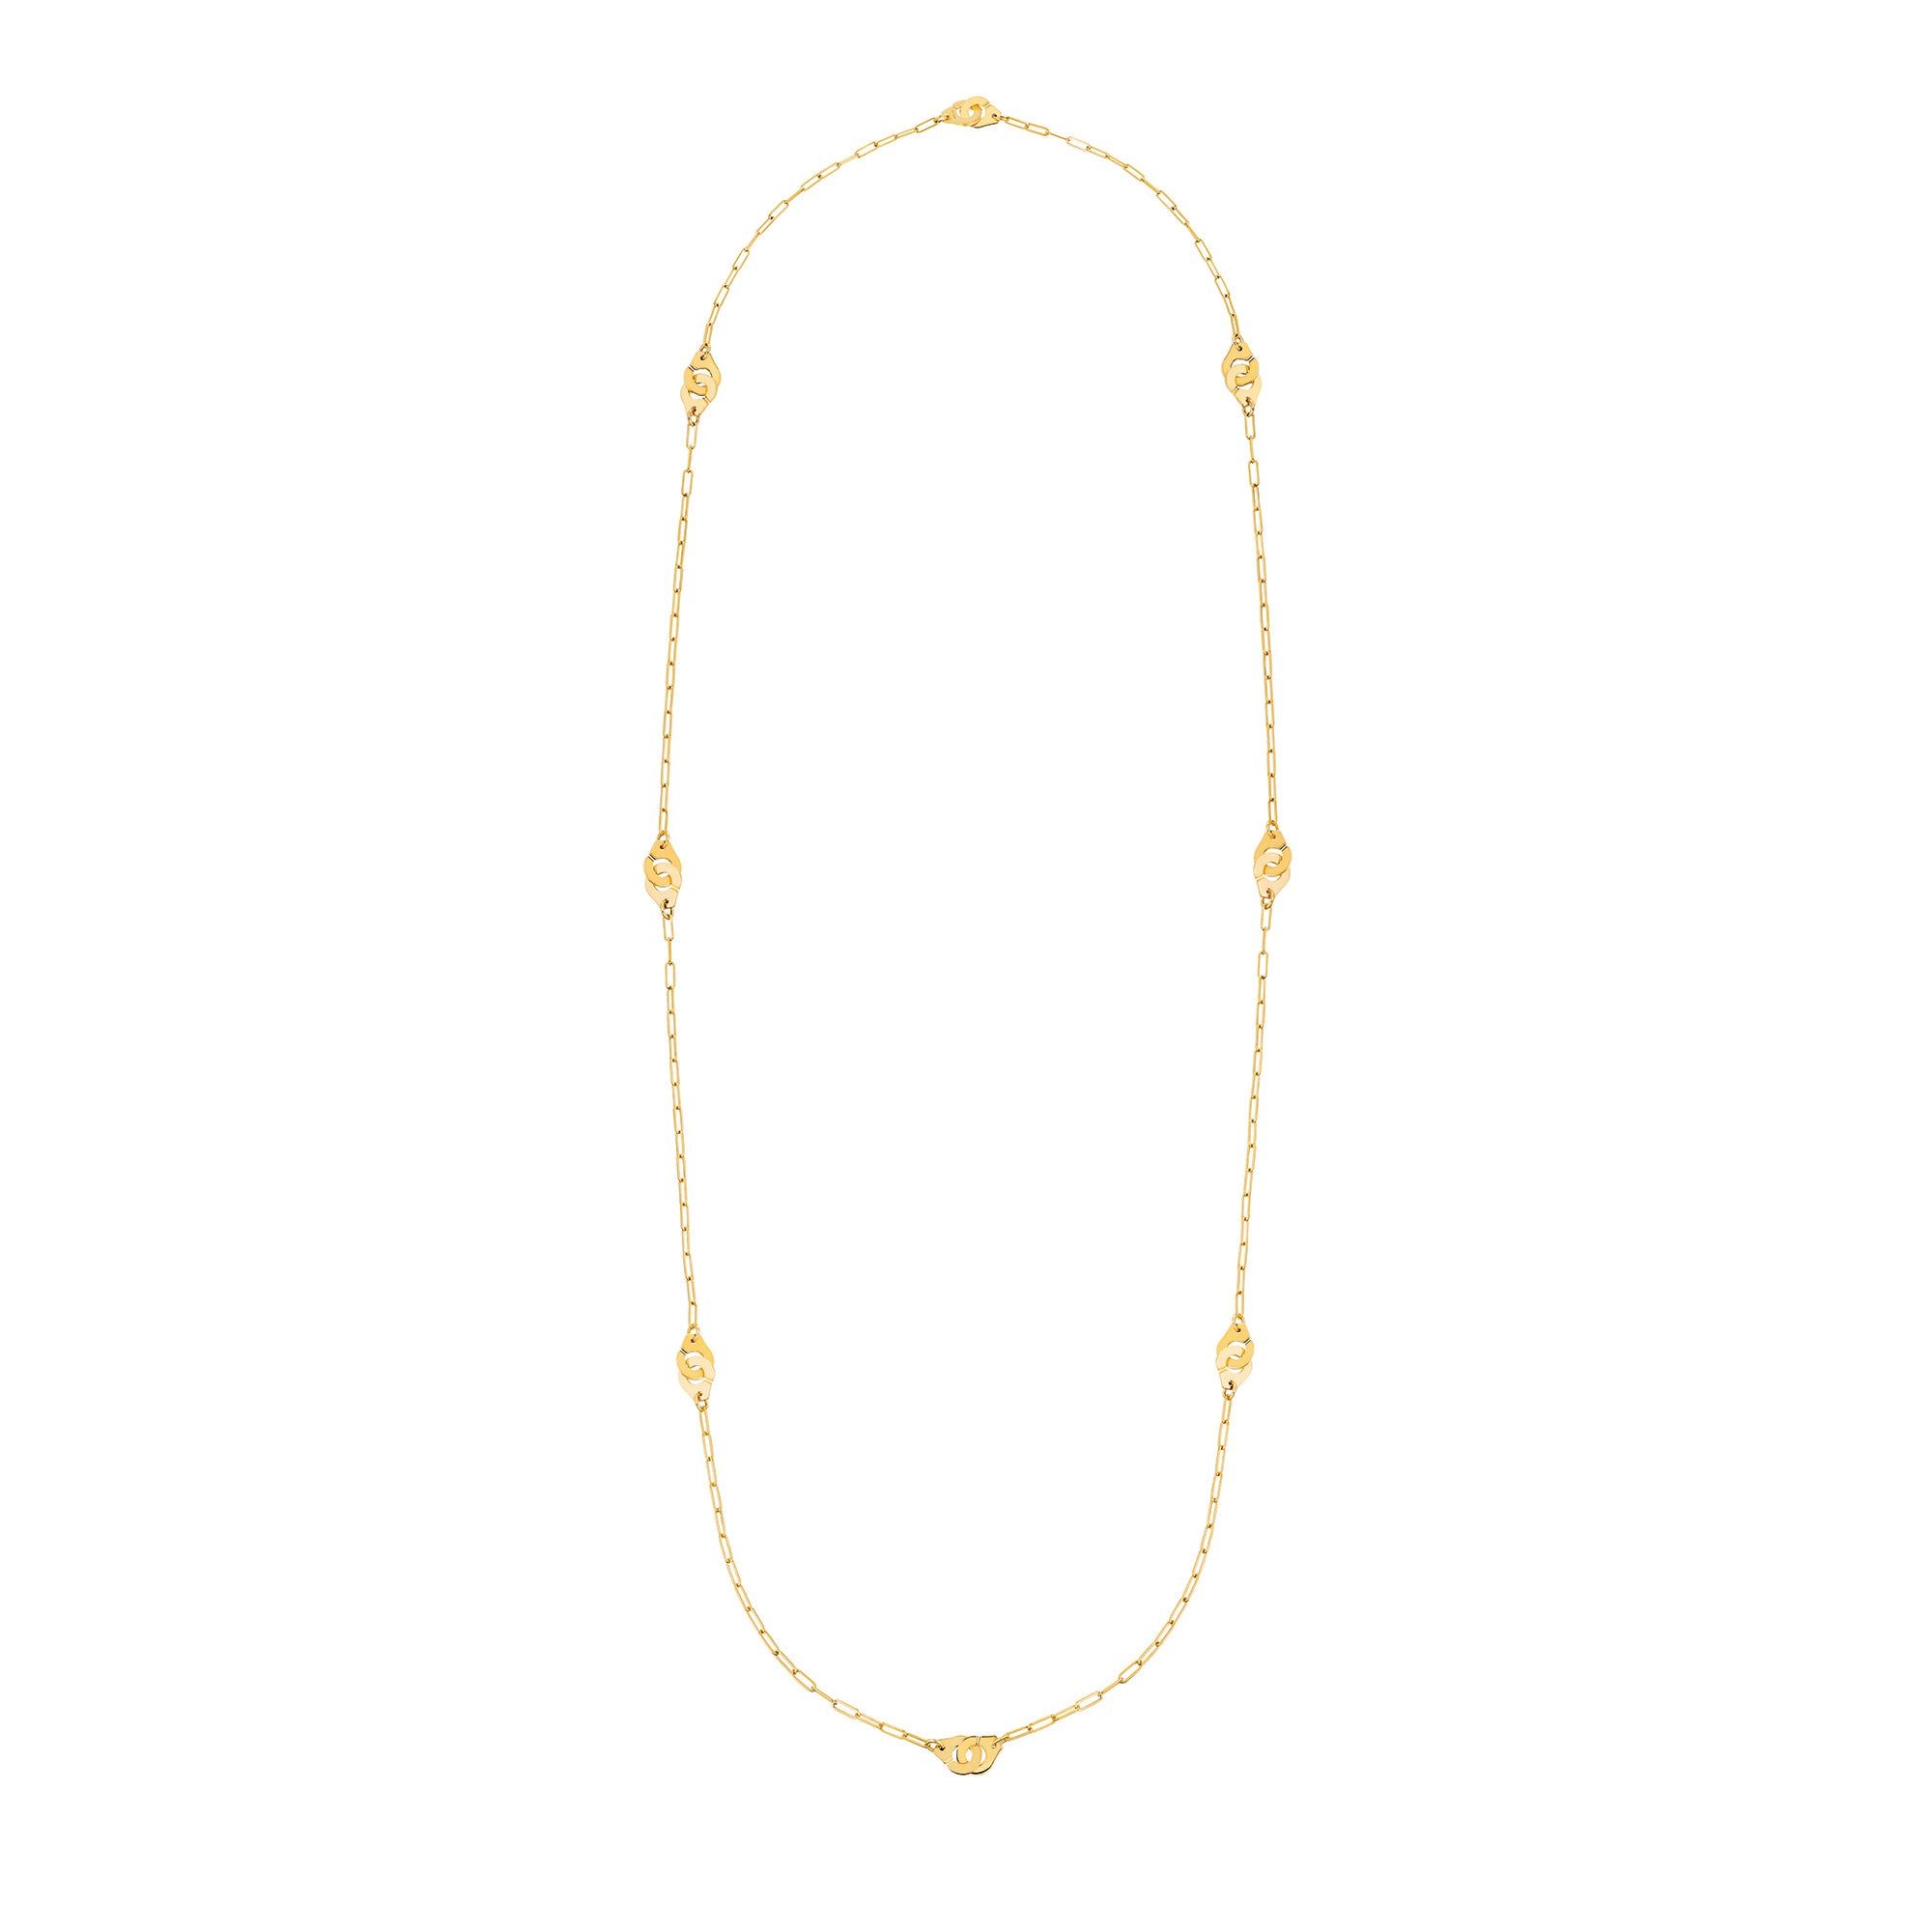 Menottes R8 Long Necklace - Dinh Van - Necklaces | Broken English Jewelry